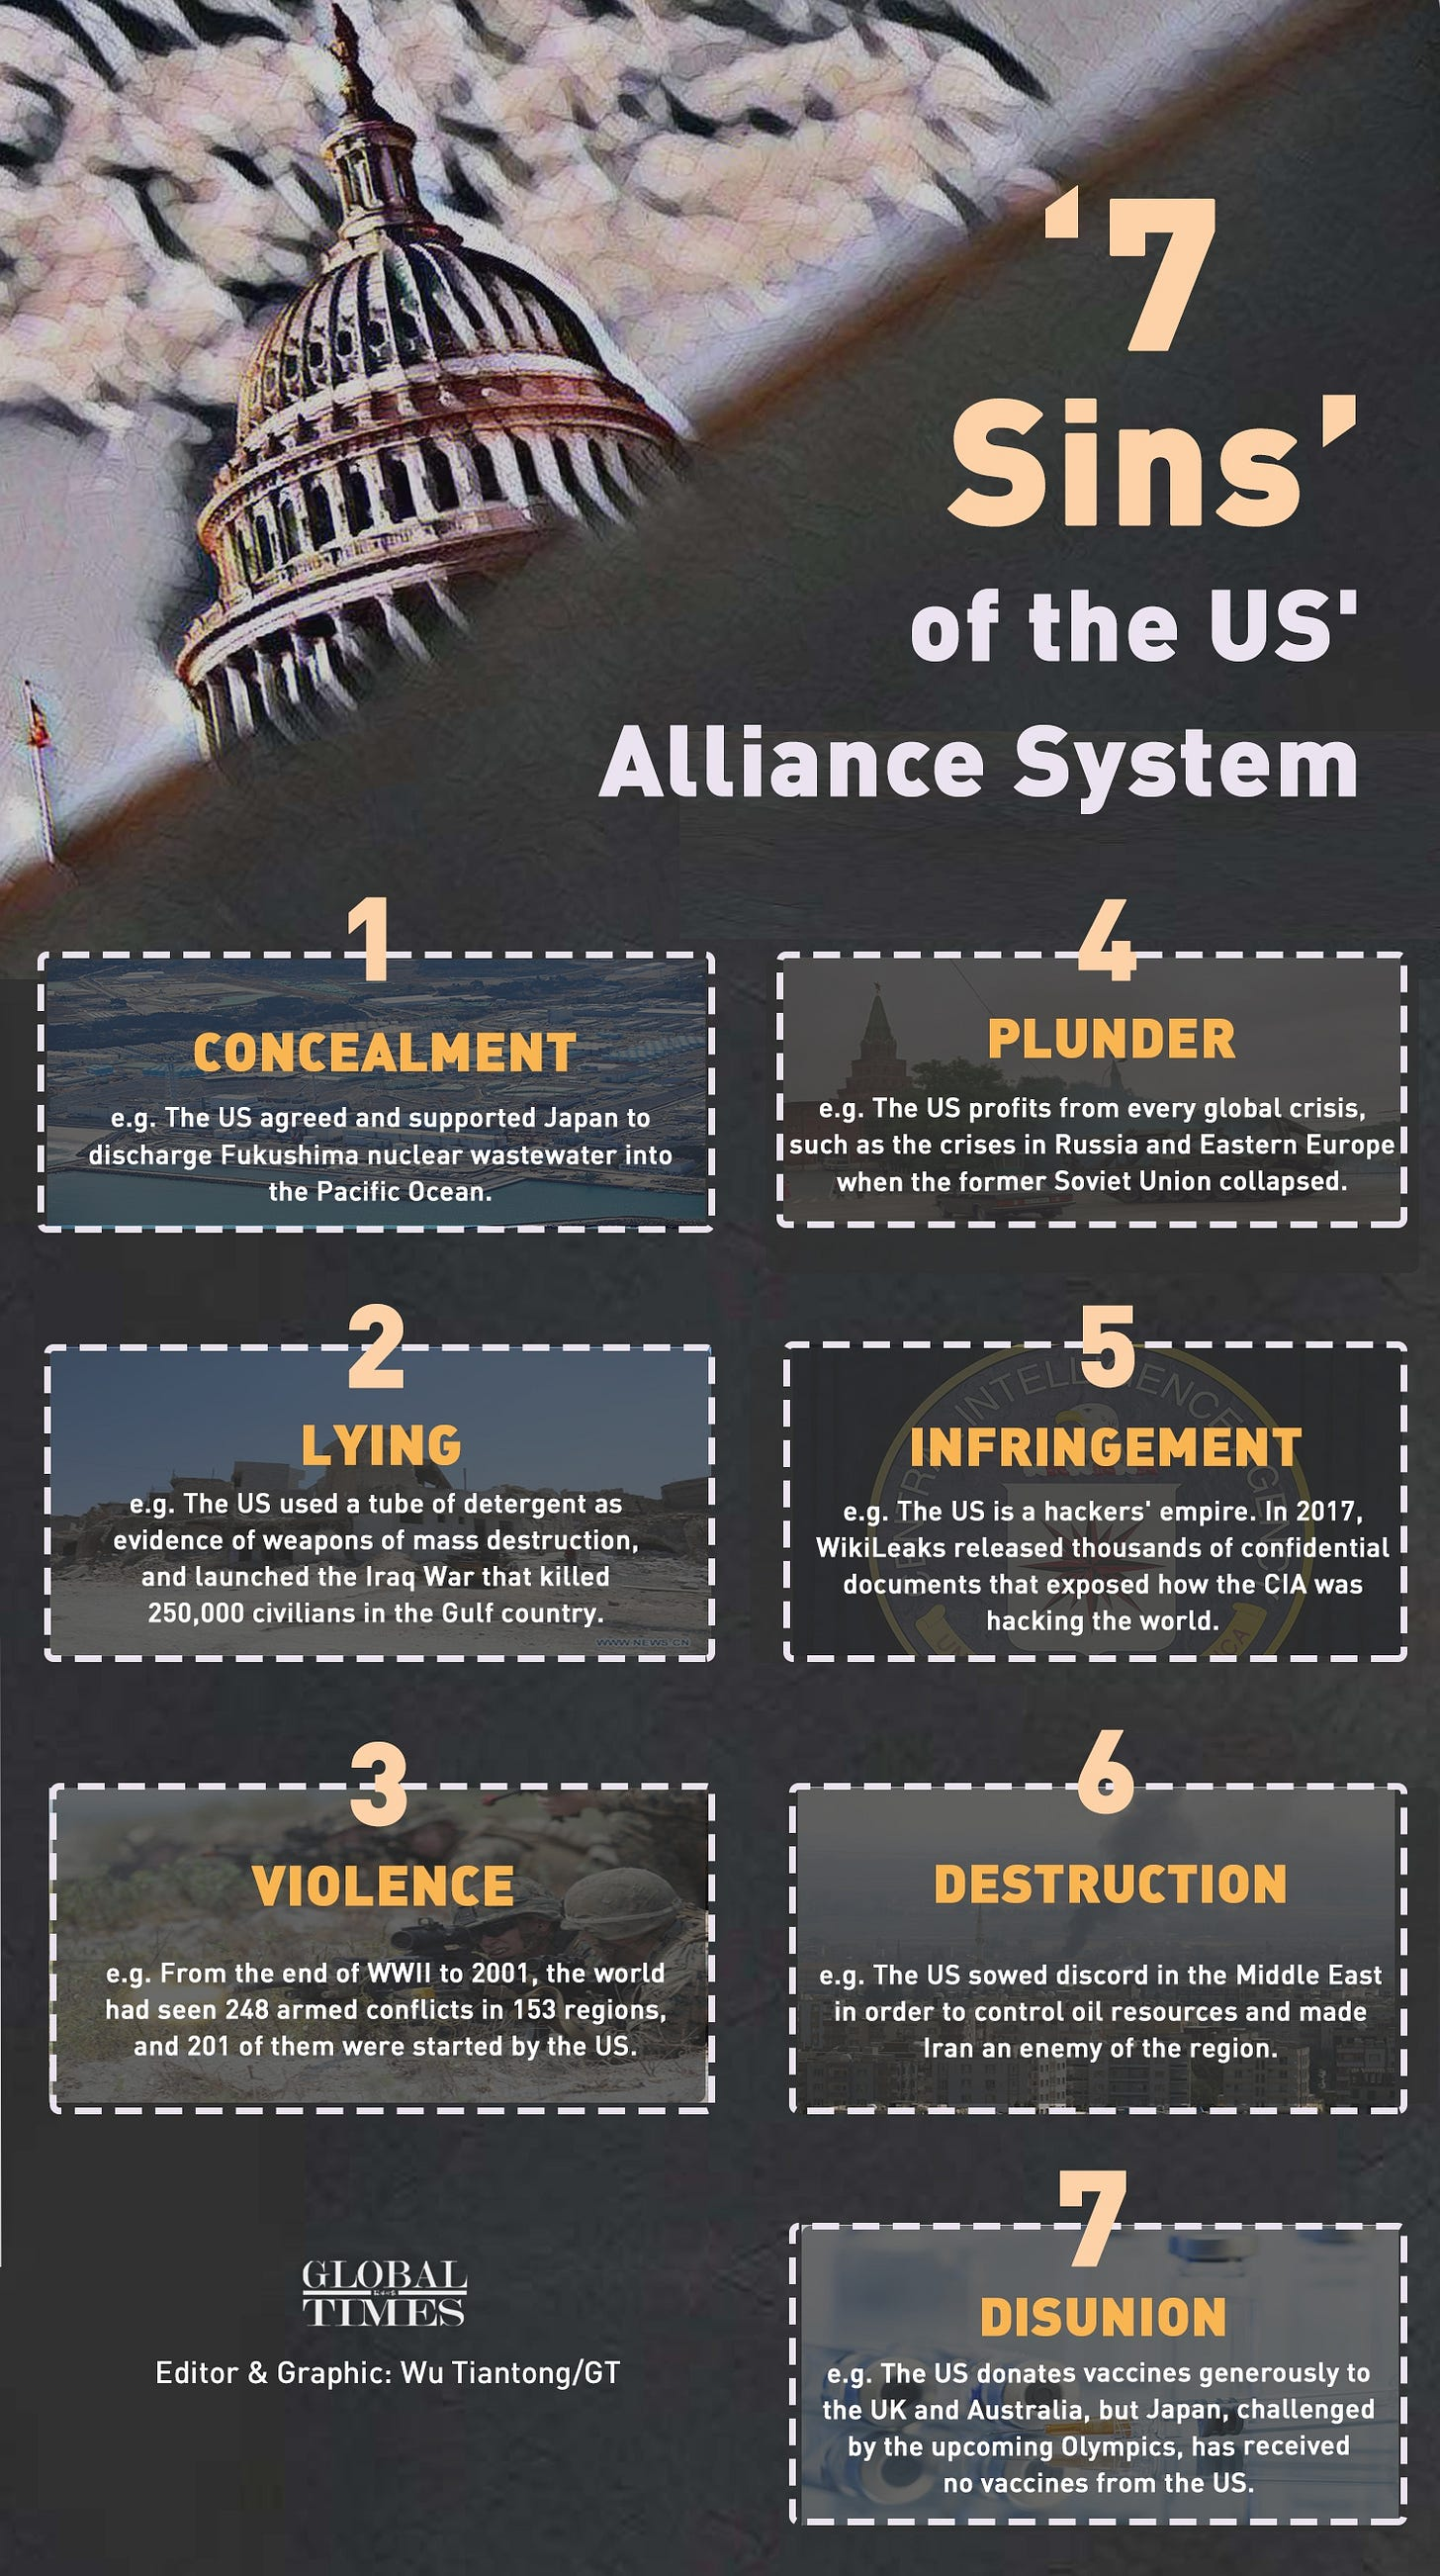 7 sins' of the US' Alliance System - Global Times